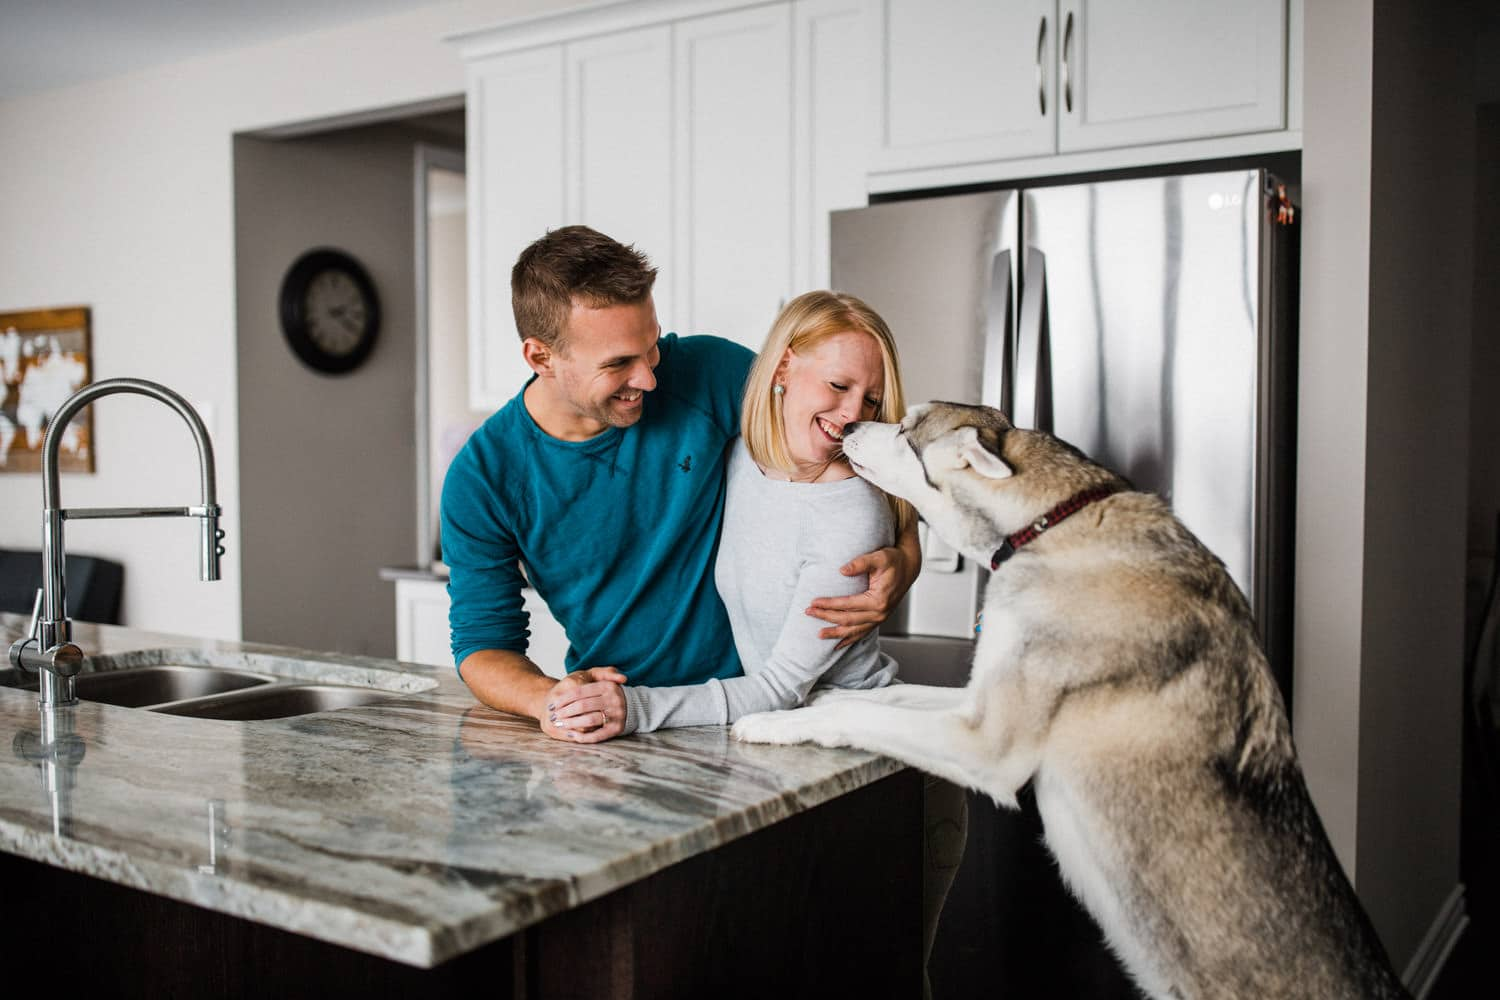 dog photobombs couples photo in kitchen - ottawa winter engagement photos